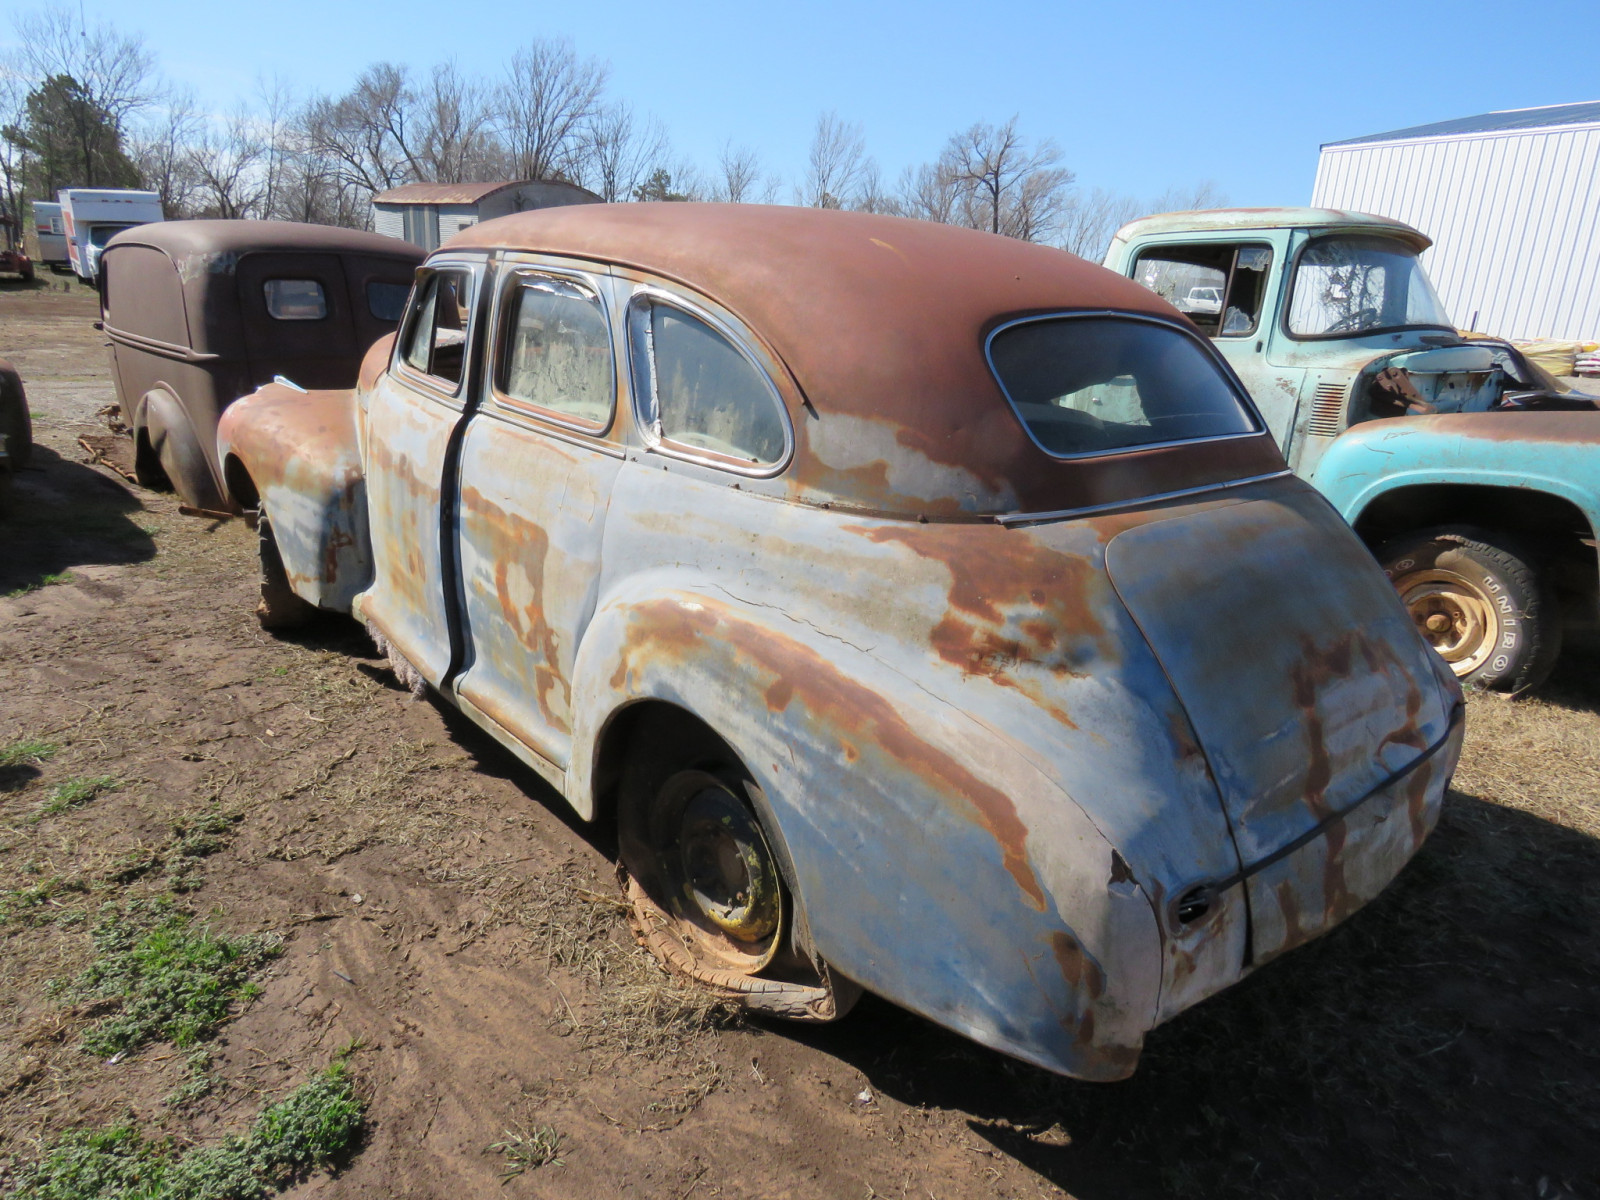 1941 Chevrolet 4dr Sedan Rolling Body - Image 3